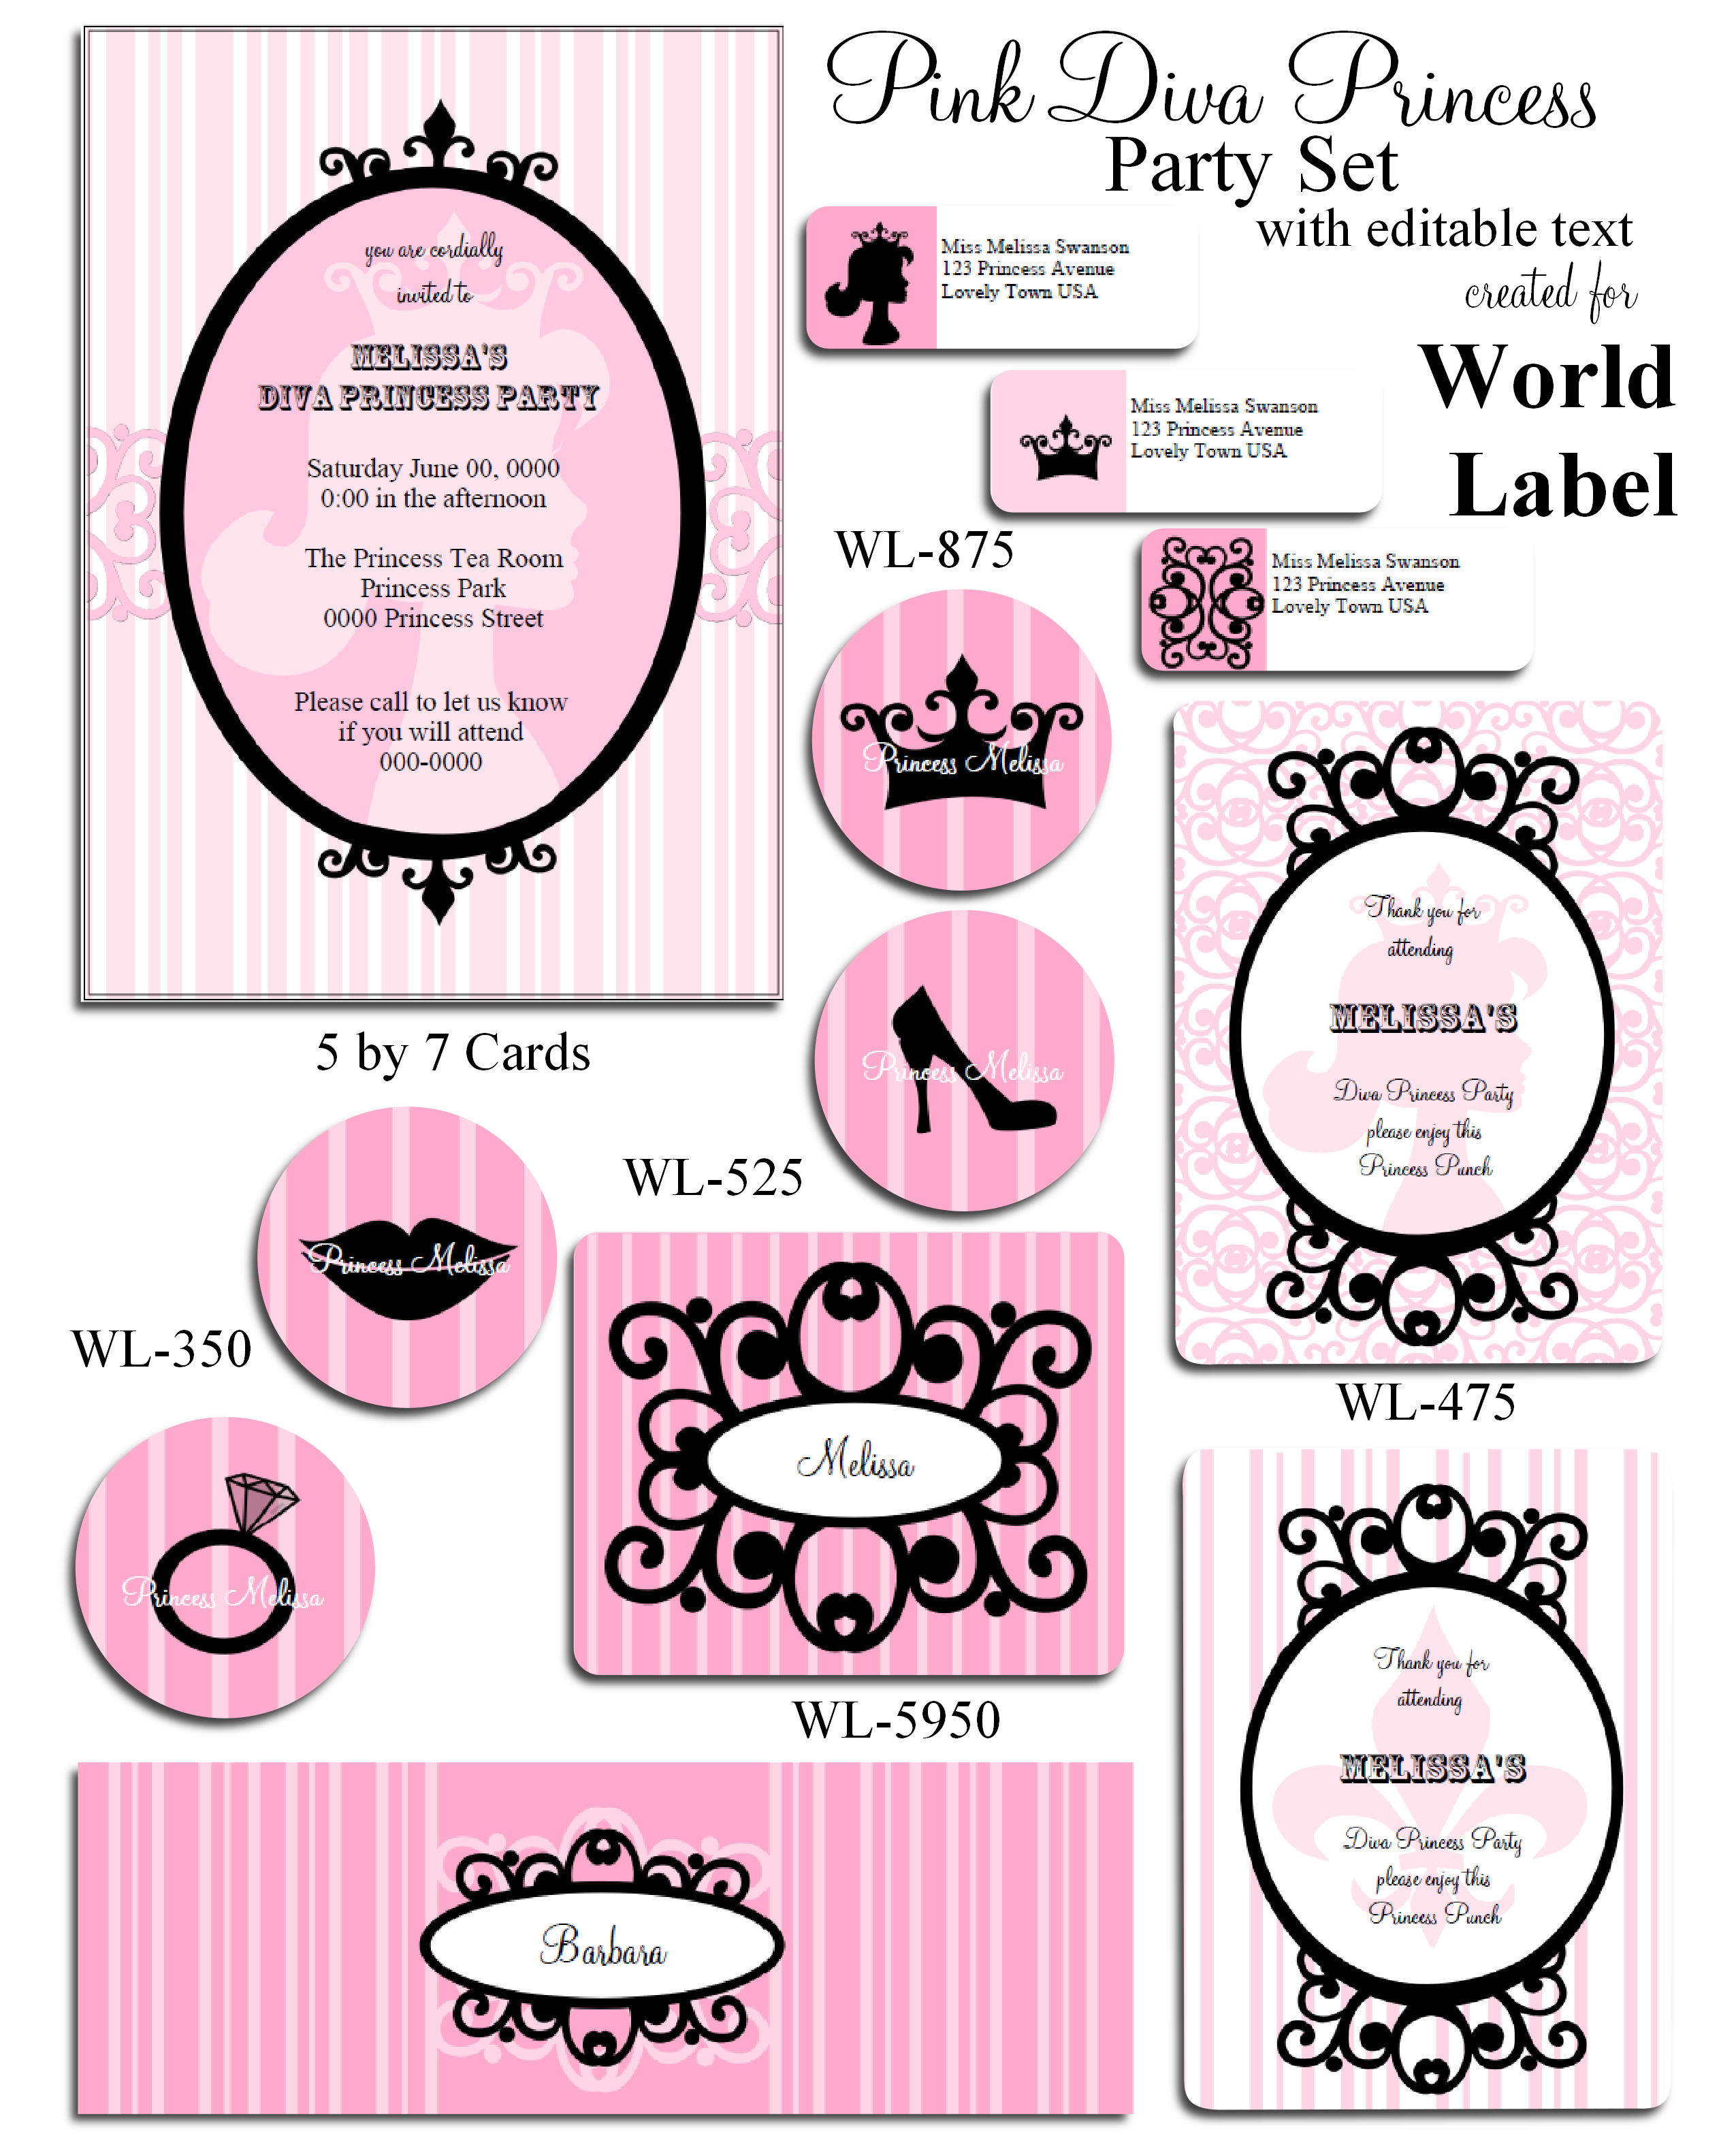 Pink Diva Princess Party Printable Set Worldlabel Blog